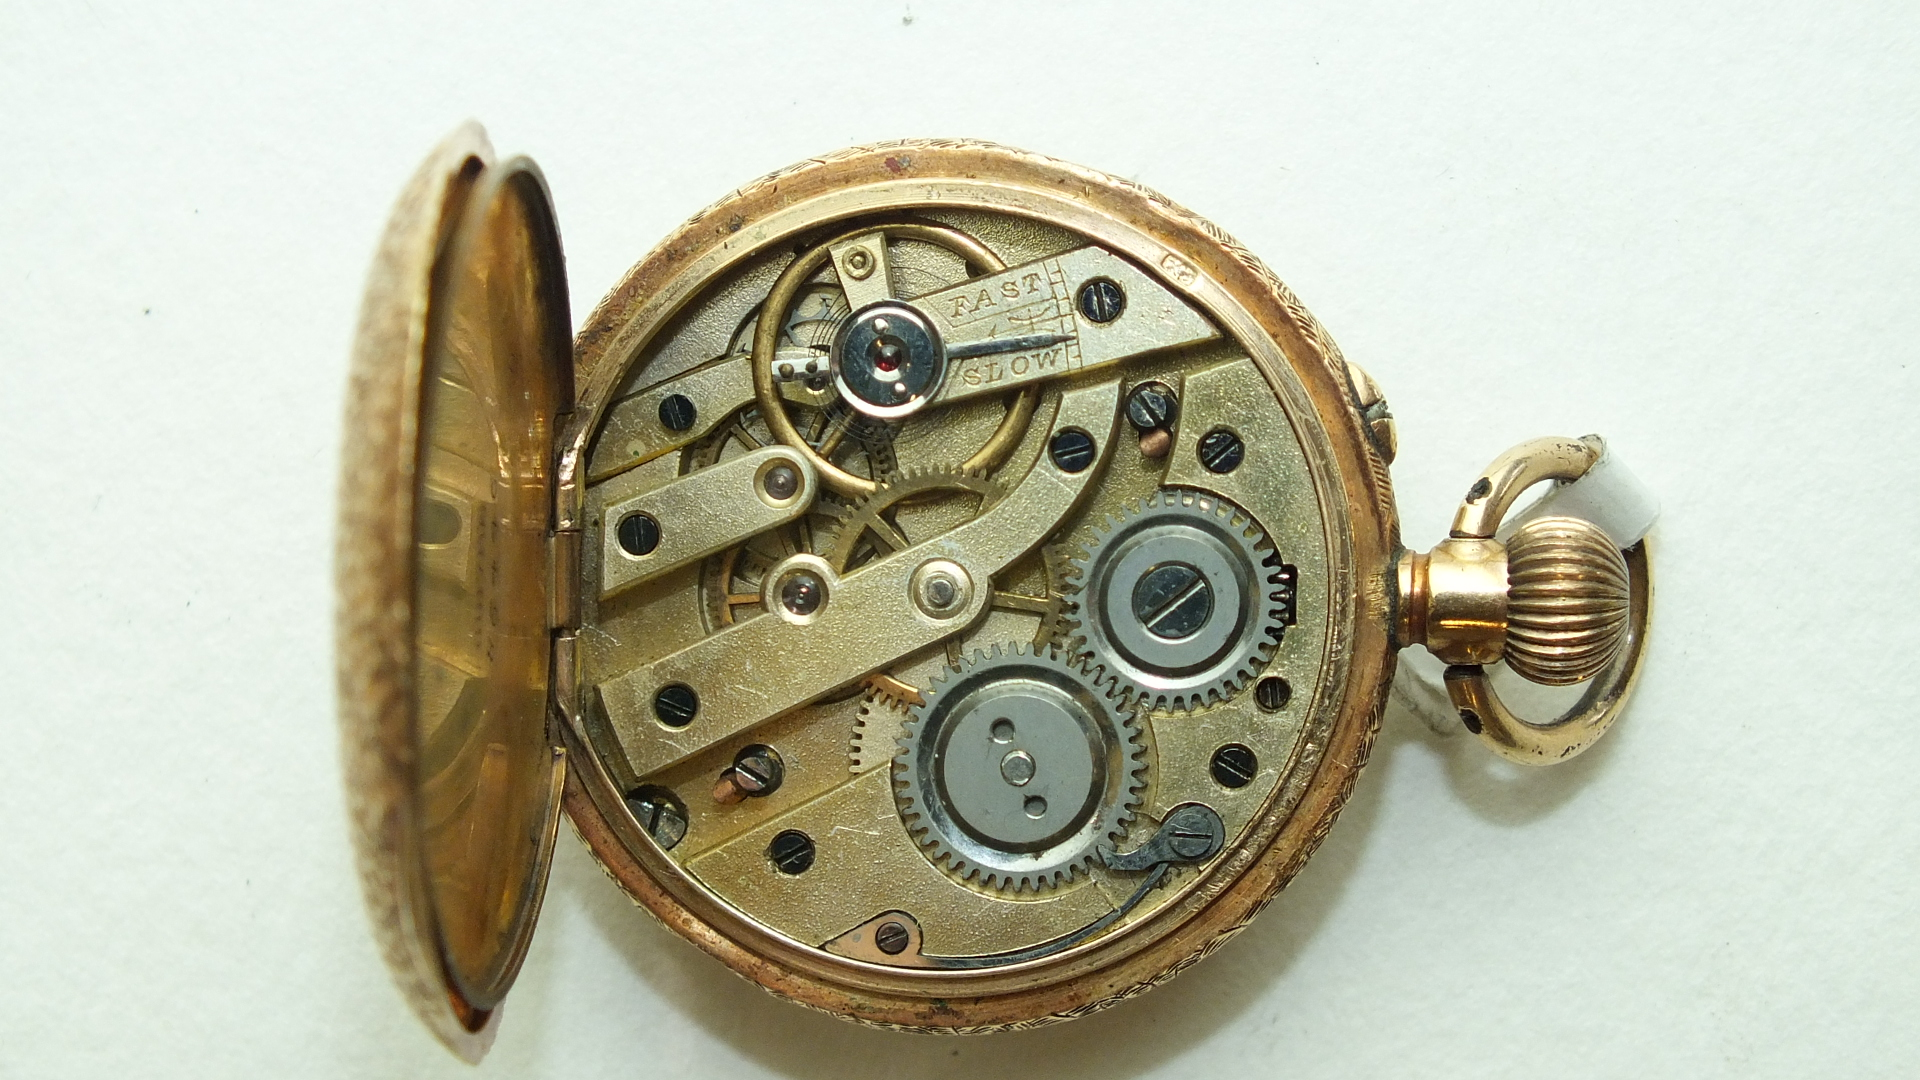 Lot 279 - A Continental ladies 14k gold open-face keyless pocket watch, the white enamel dial with Arabic